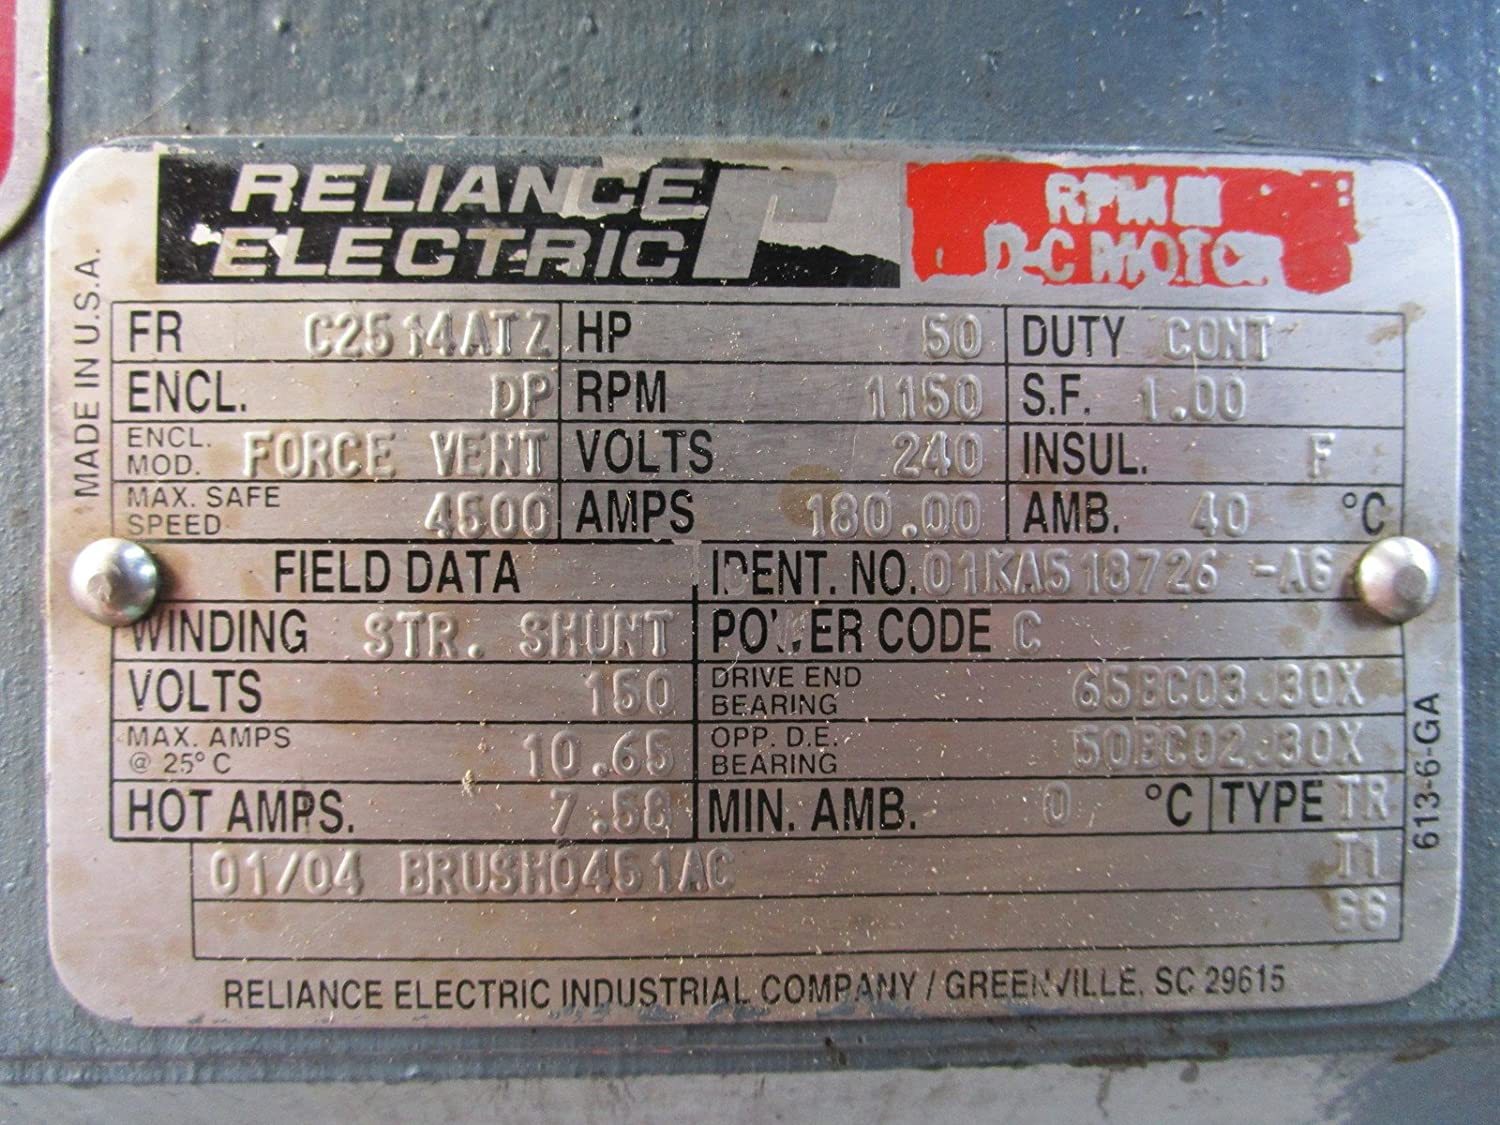 50 Hp Dc Motor Wiring Diagram For Reliance Schematic Diagrams 480 Volt Amps Newmotorspot Co Ac